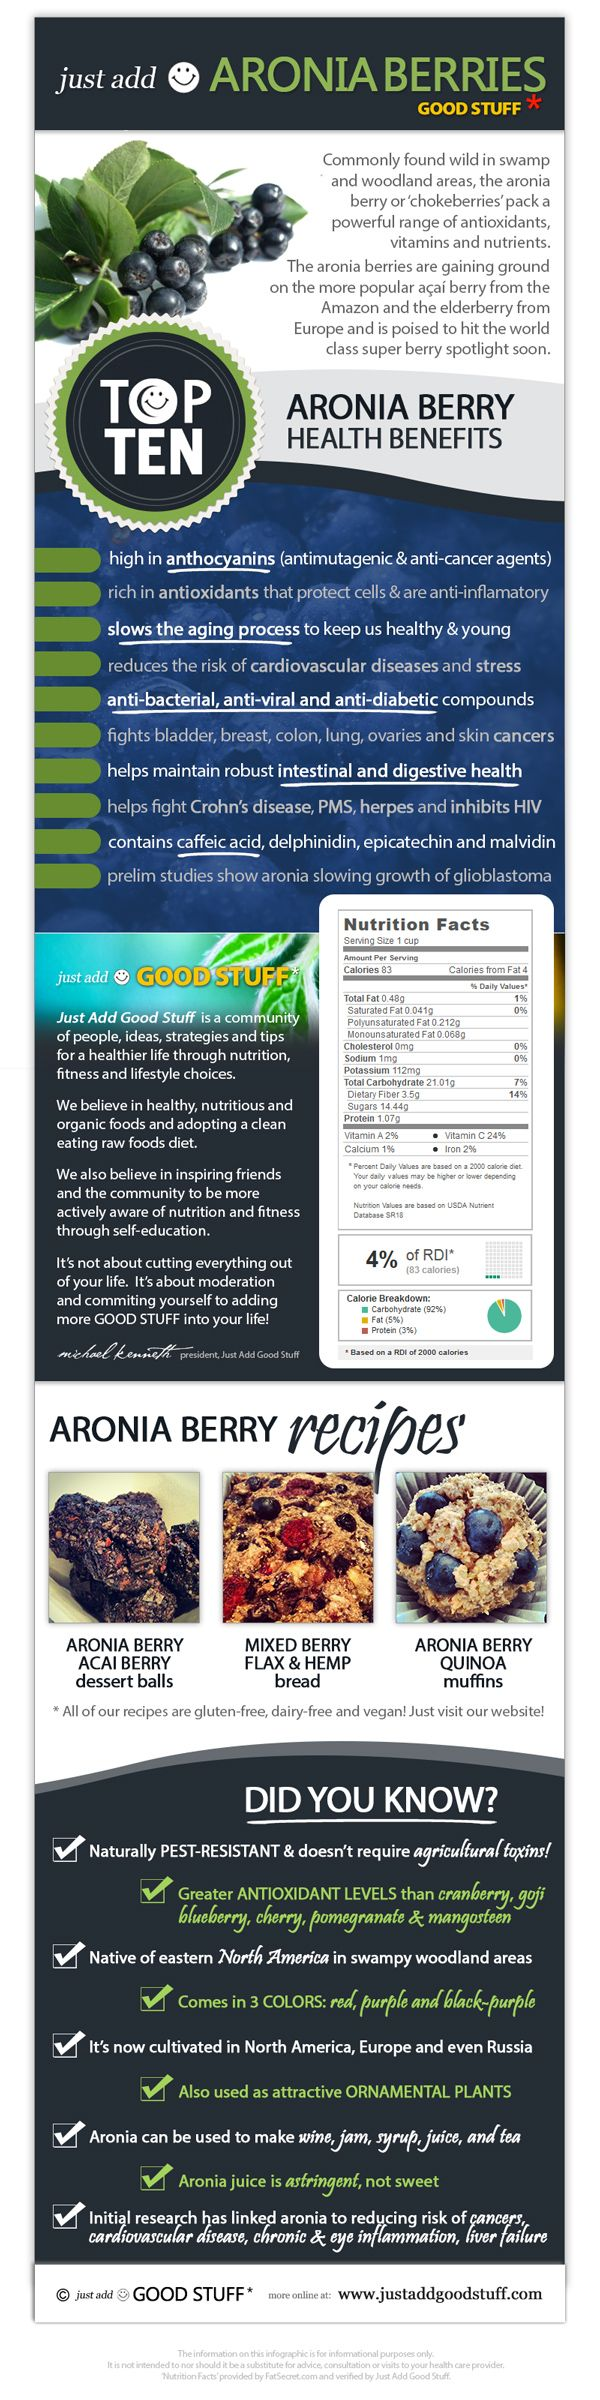 Just Add Good Stuff Aronia Berry Infographic detailing the health benefits in a visual way